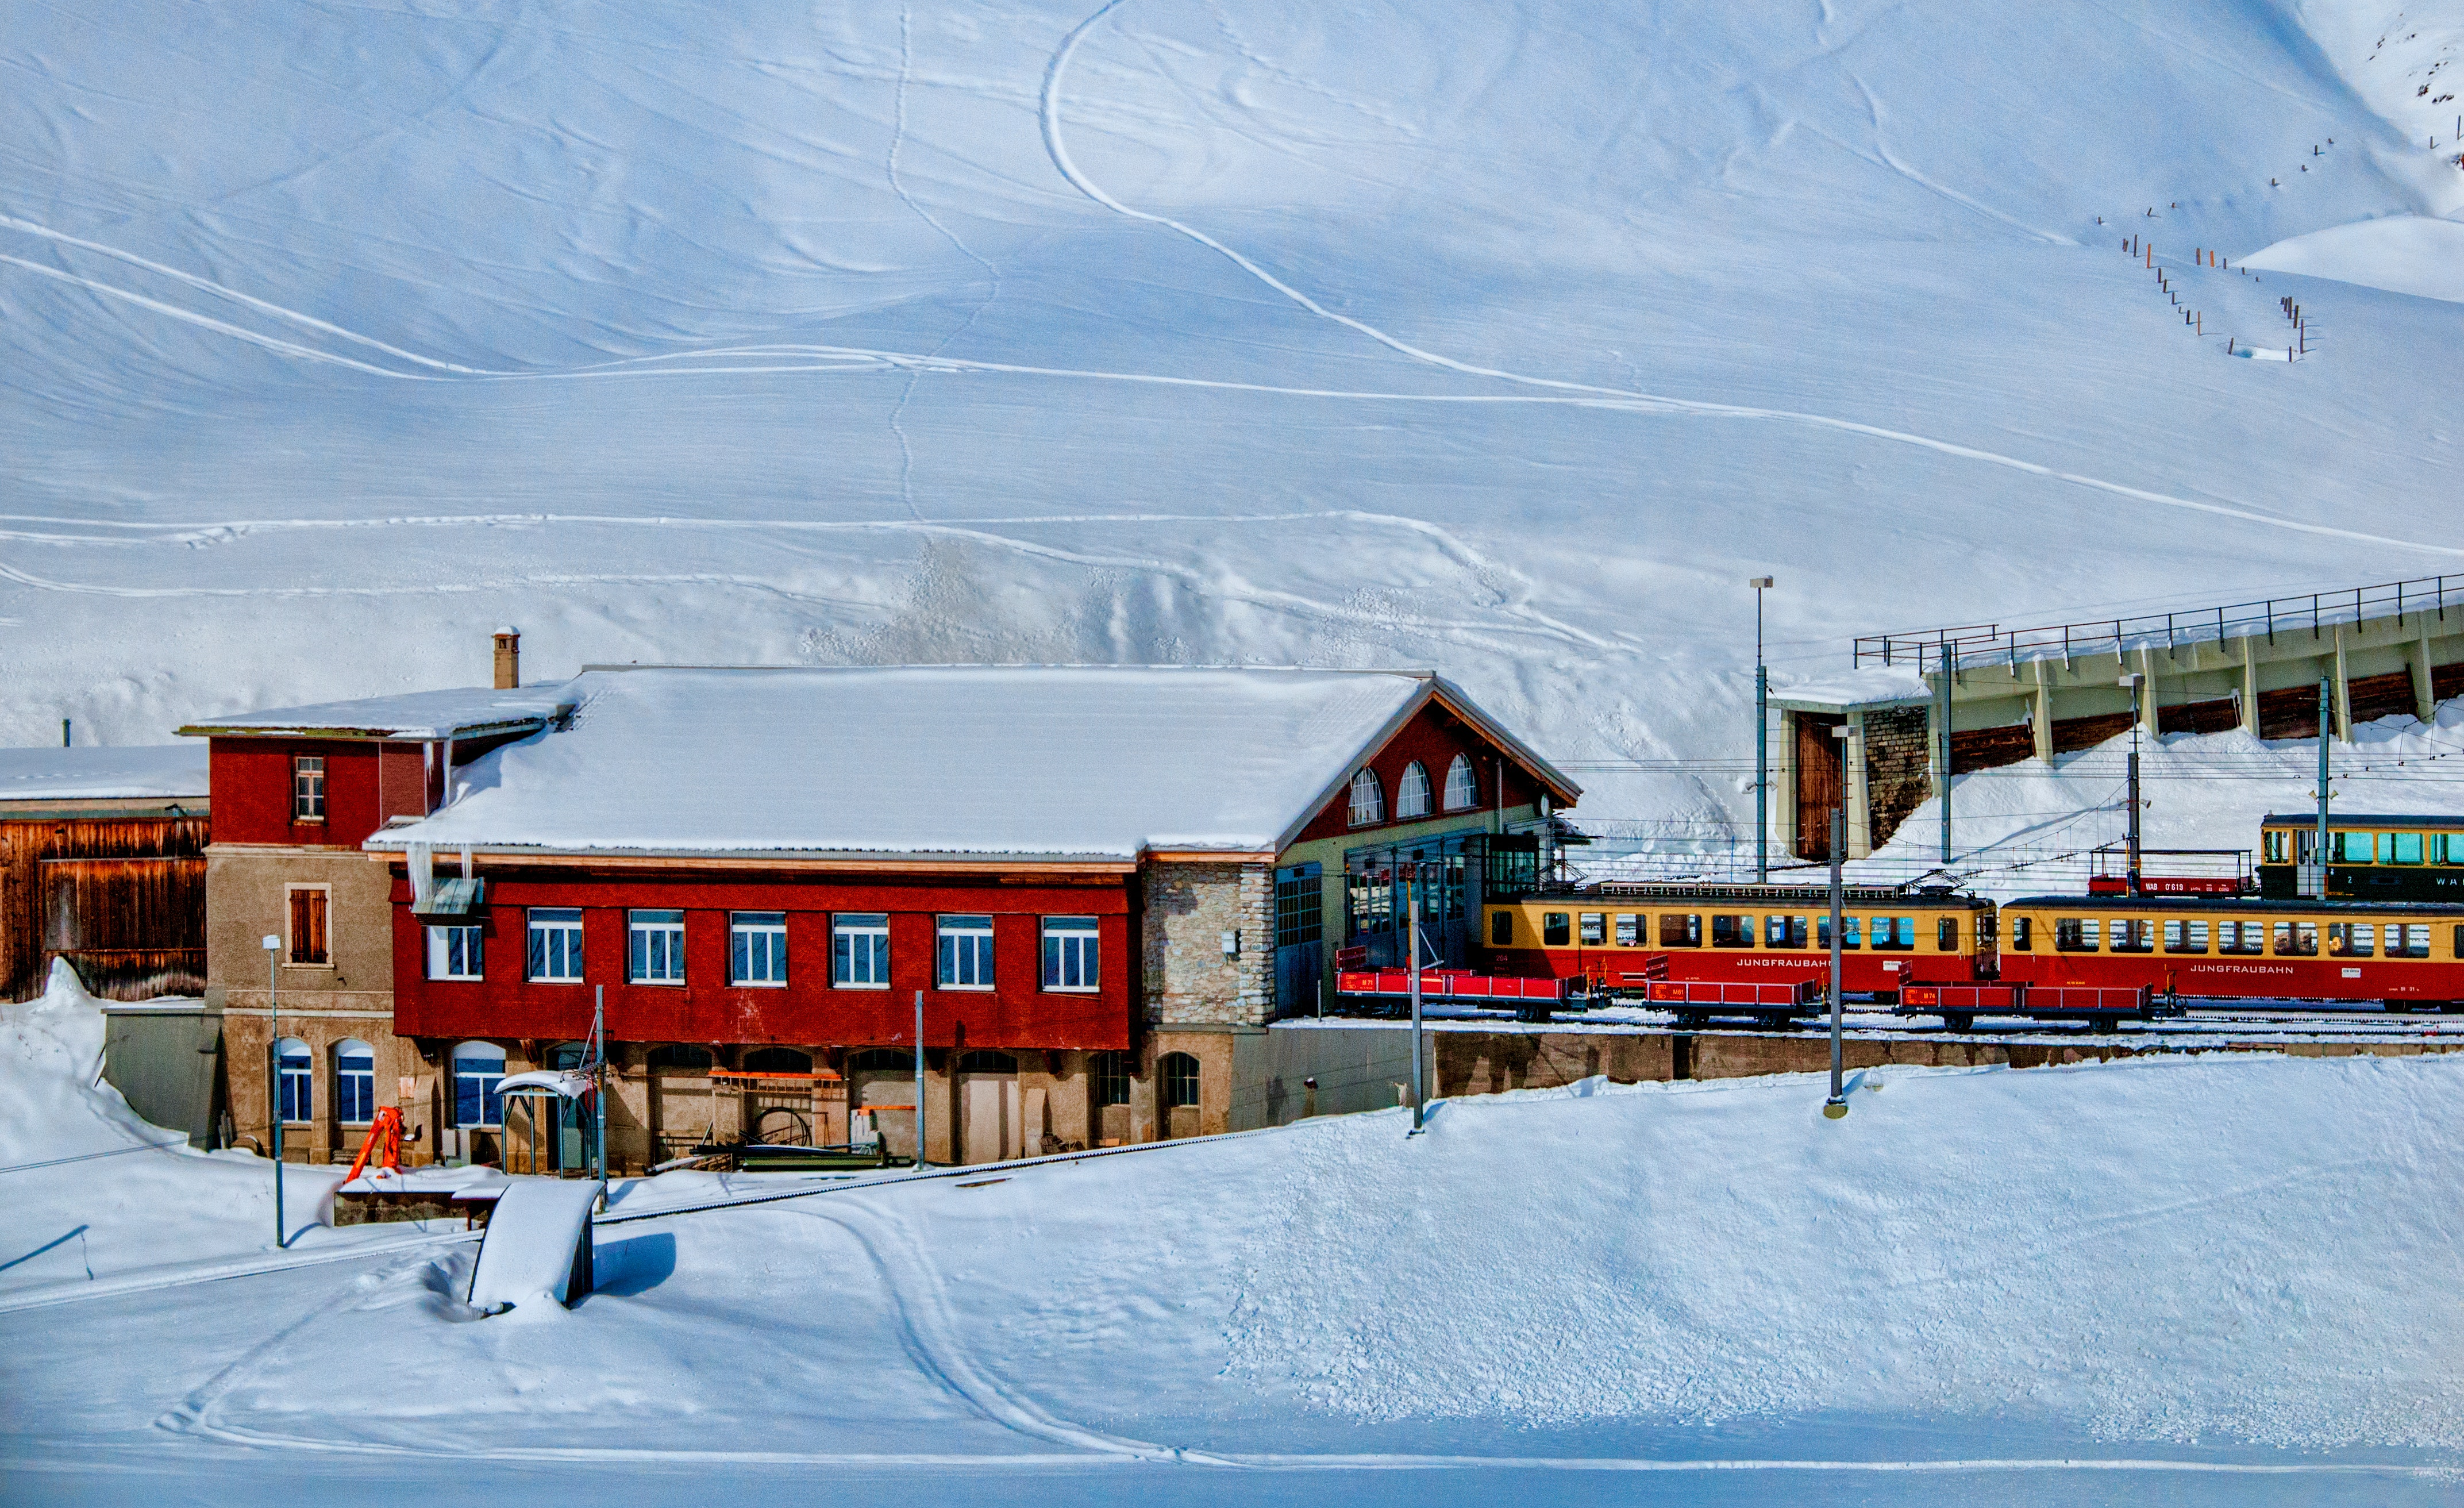 Yellow and red train beside snowy mountain photo